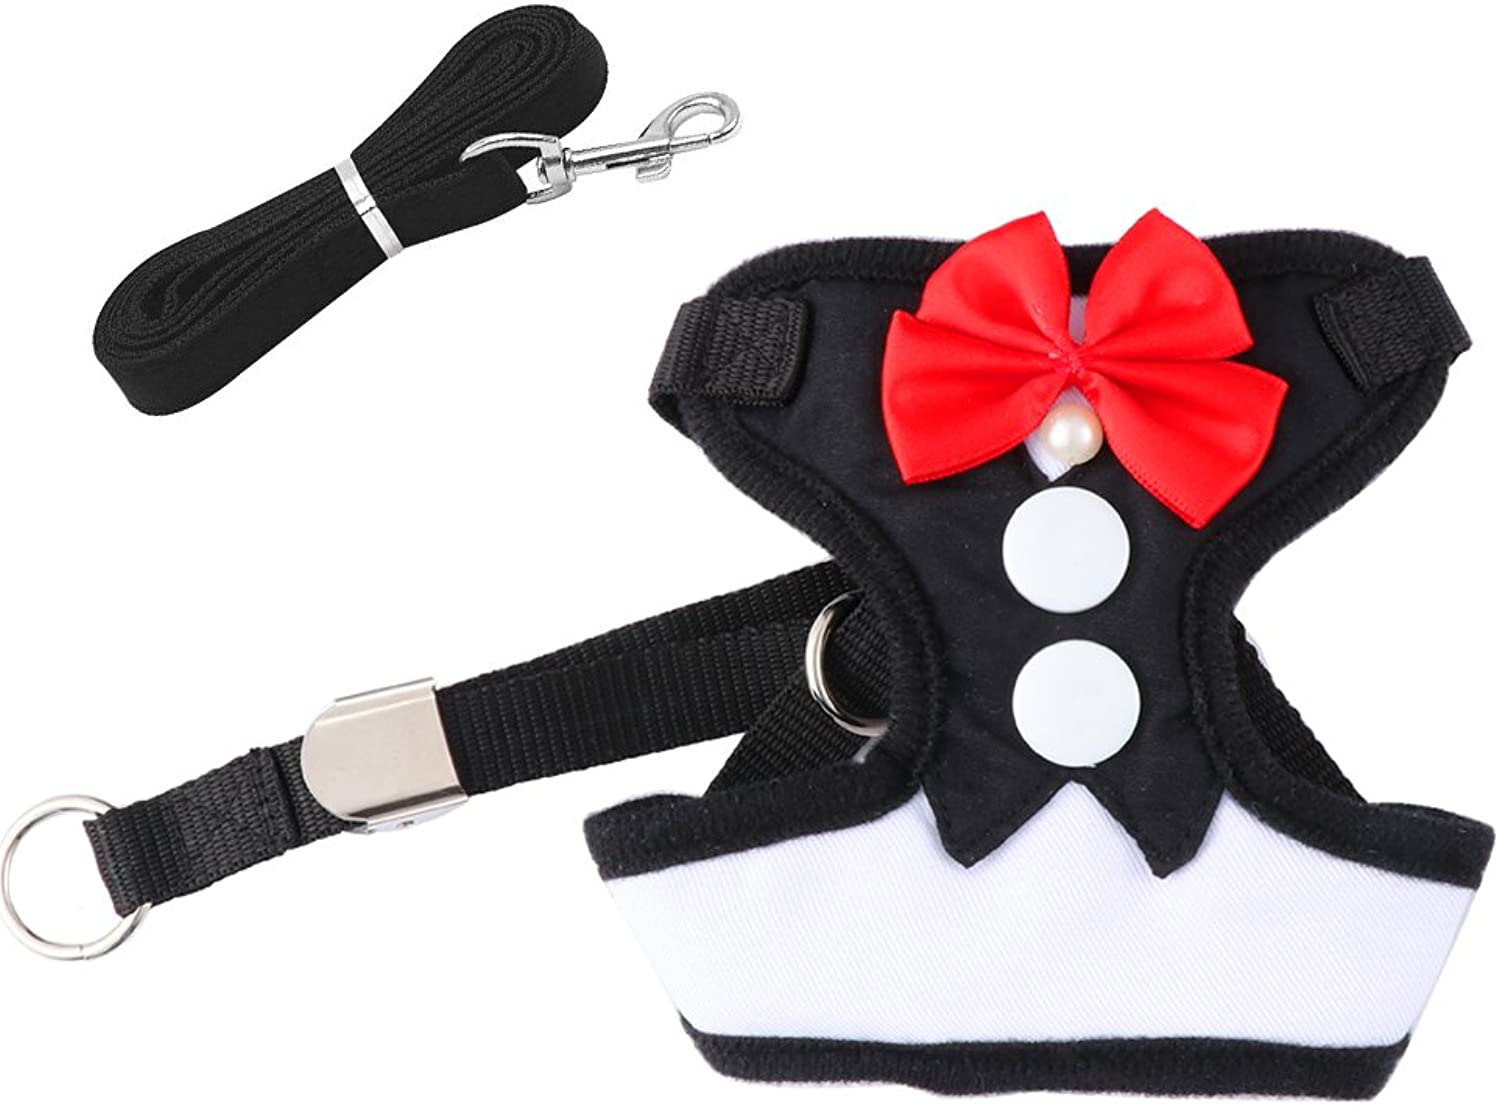 Ohkuu Dog Vest Harness,Breathable Mesh Bowtie Gentleman Dog Harness Adjustable Soft Pet Chest Vest with Handle for Puppy,Cat (M)